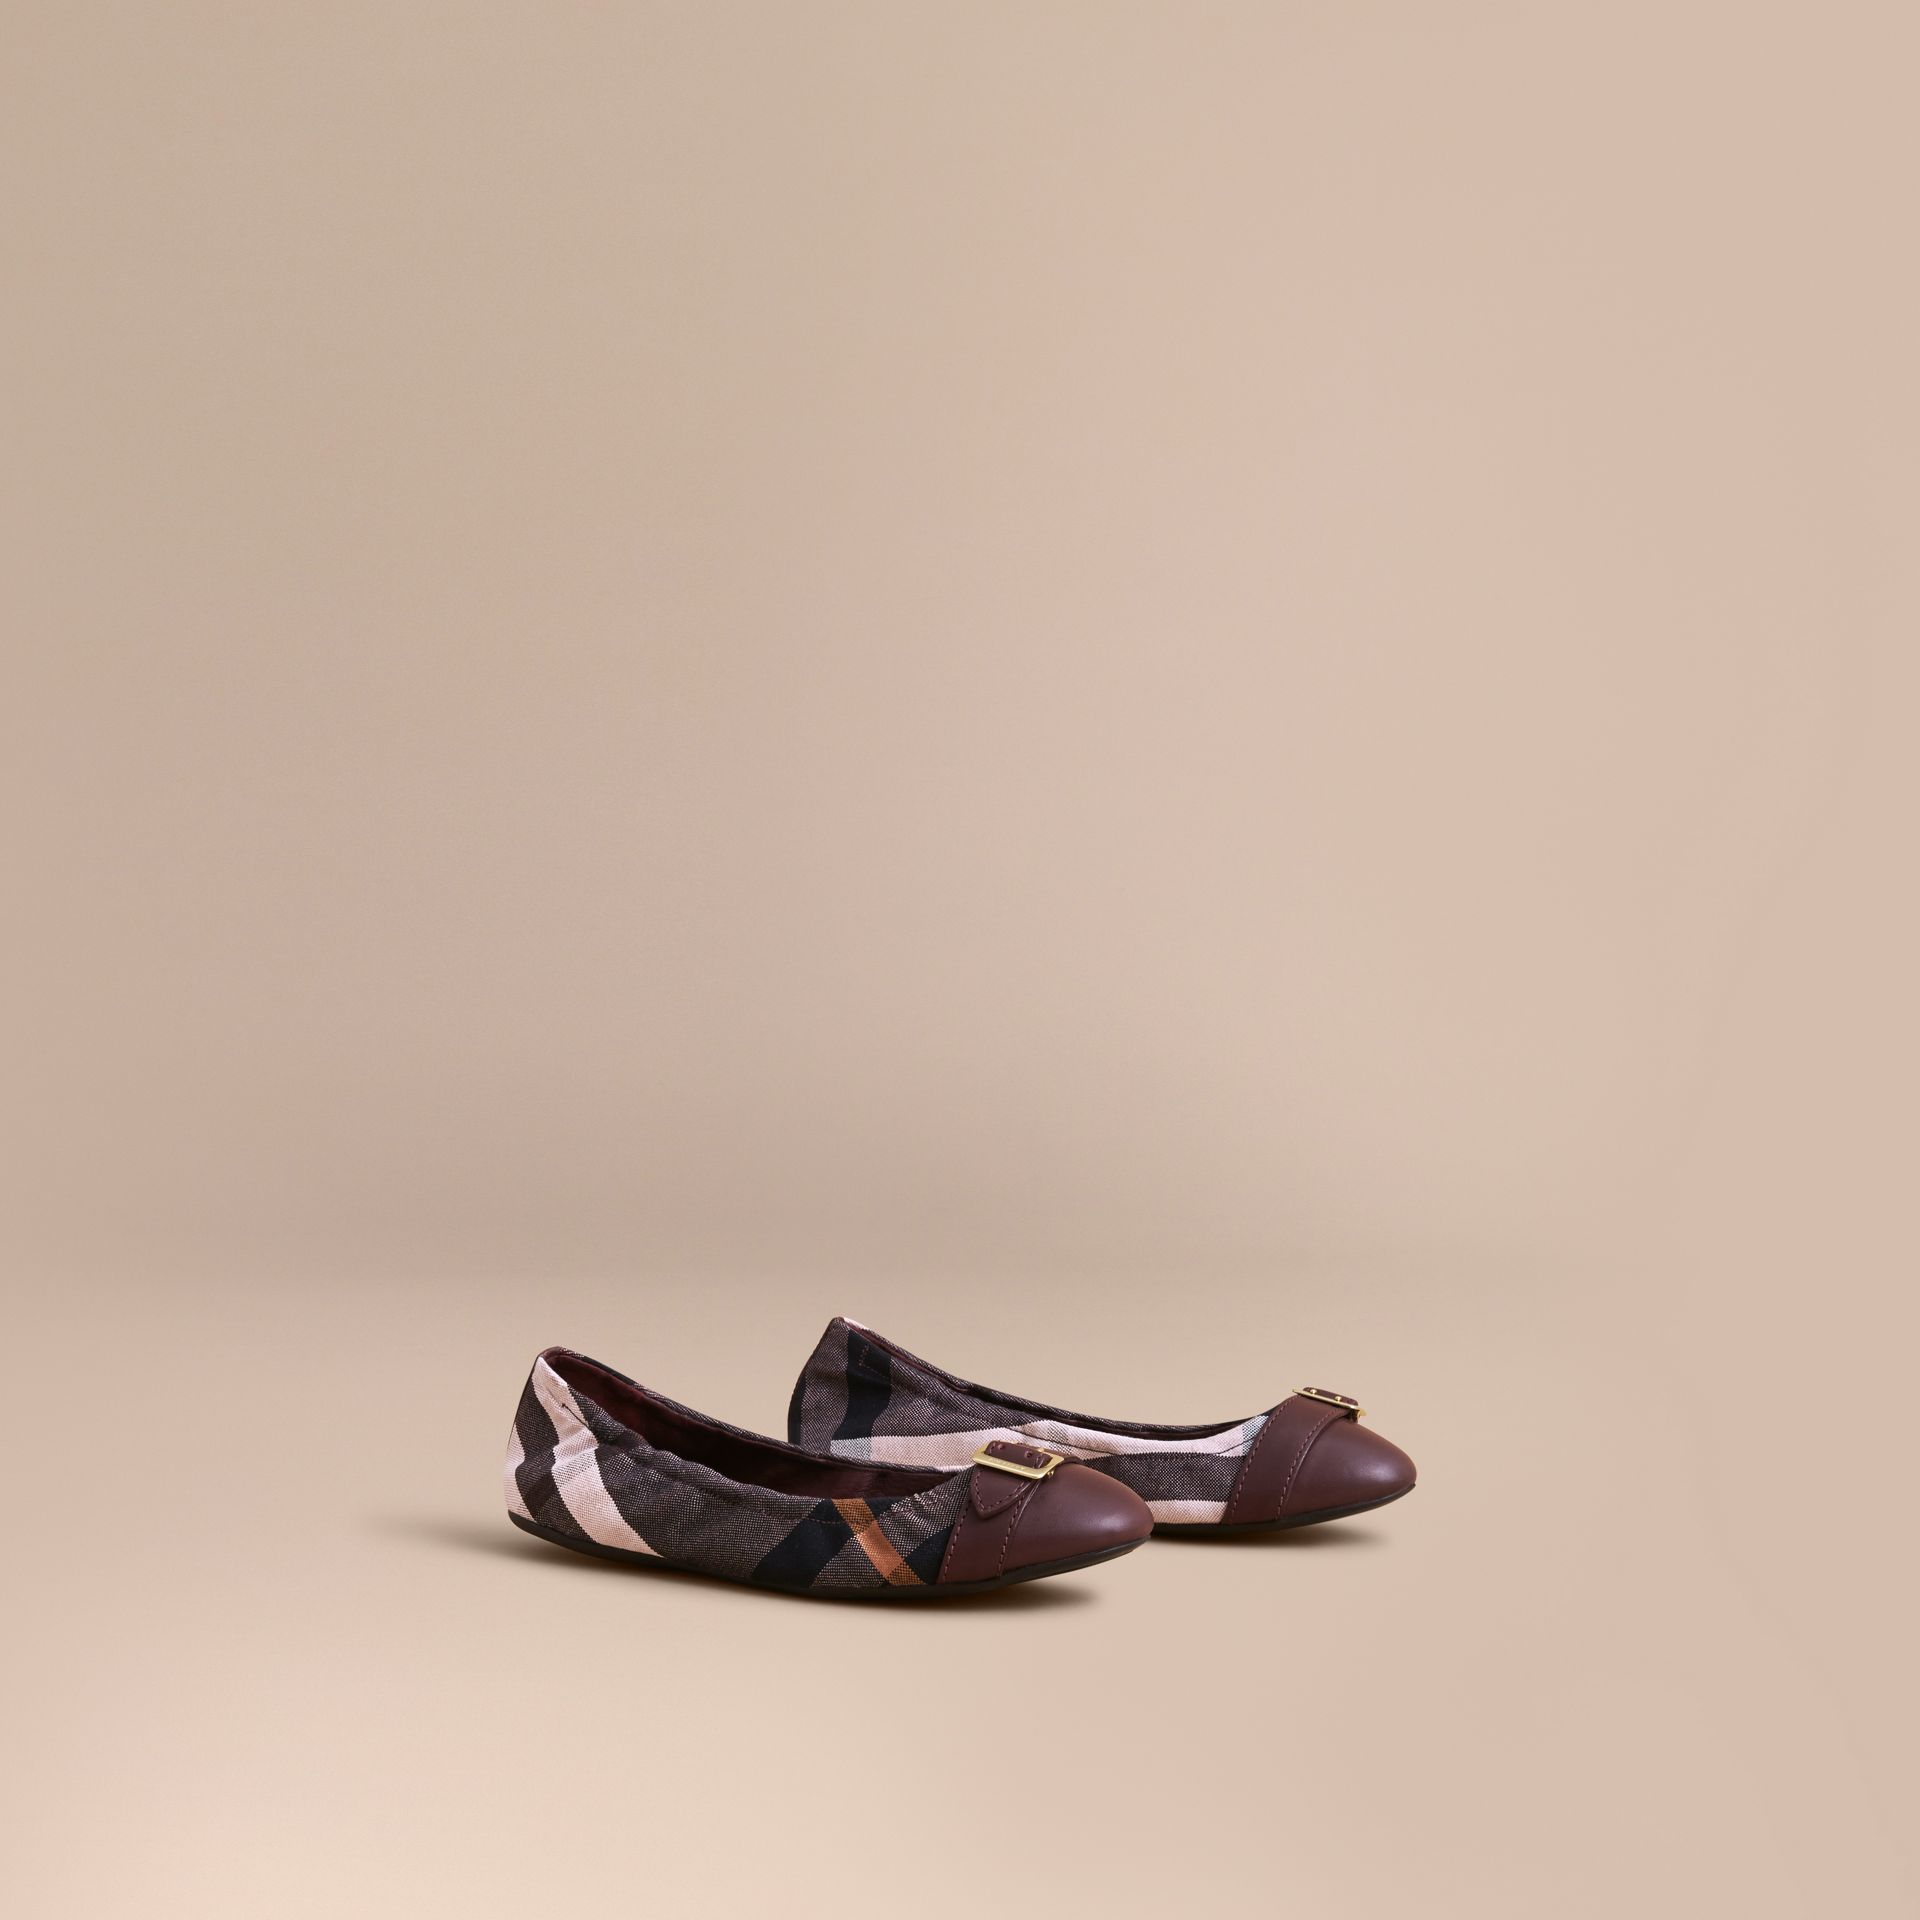 Check Linen Cotton and Leather Ballerinas - Women | Burberry - gallery image 1